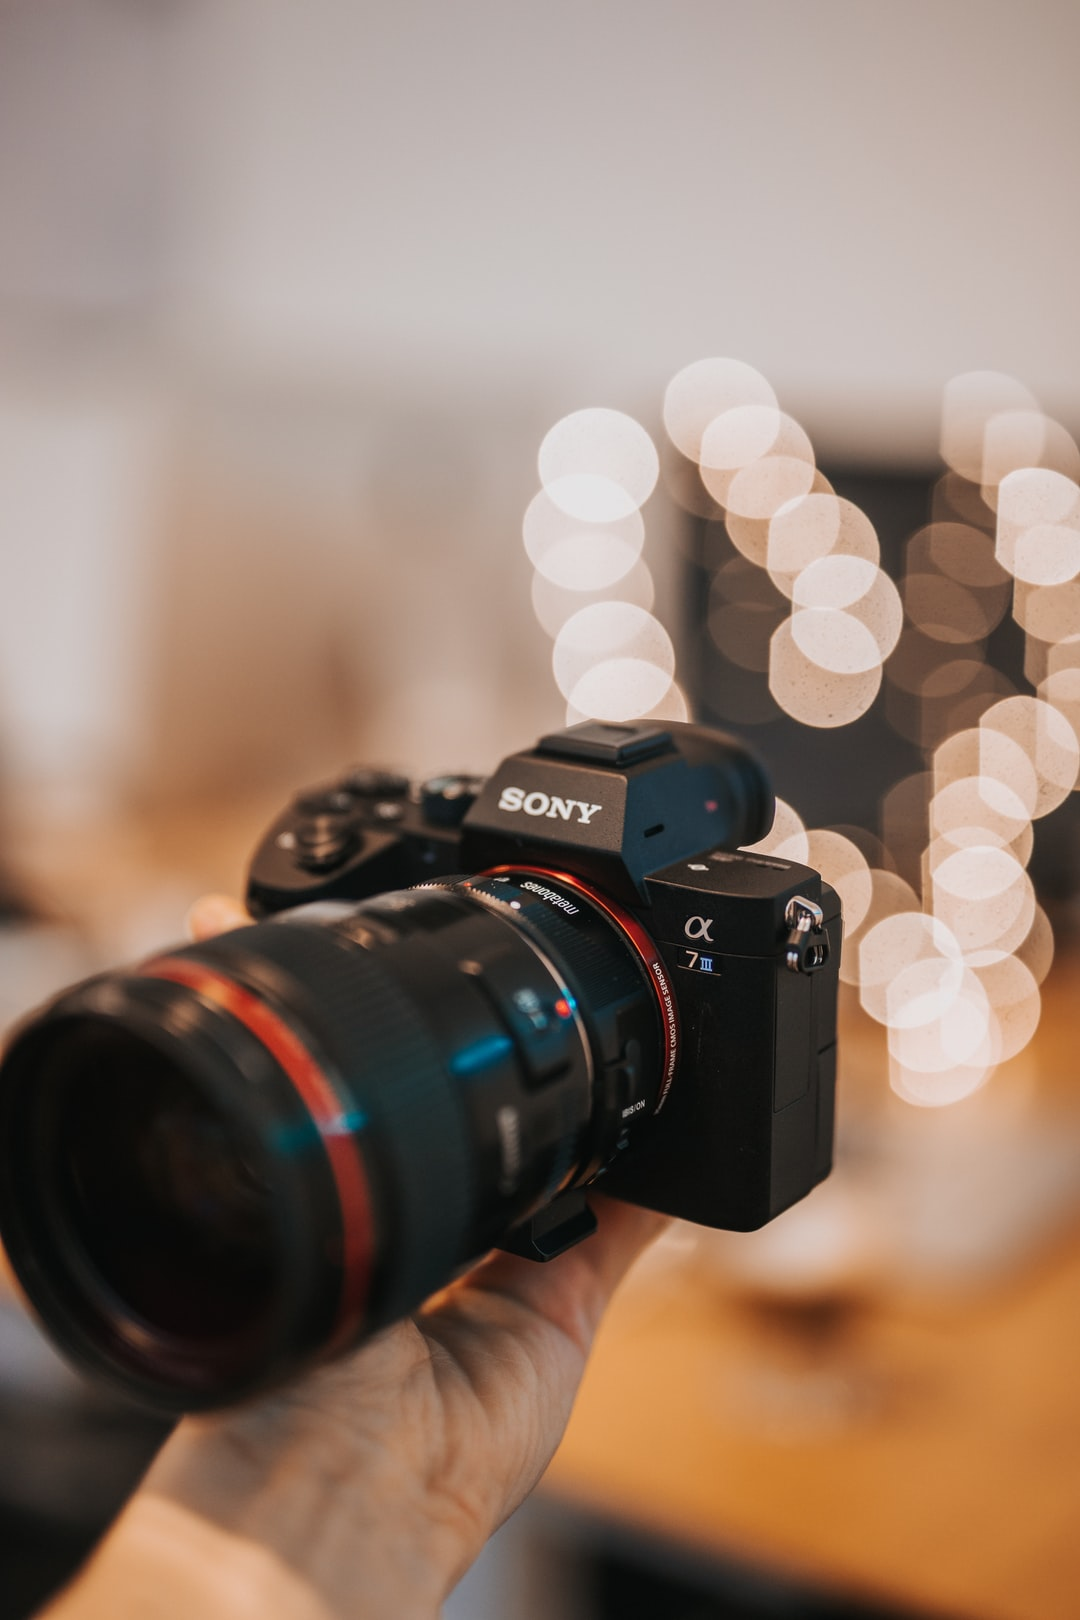 Hq Sony A7iii Pictures Download Free Images On Unsplash